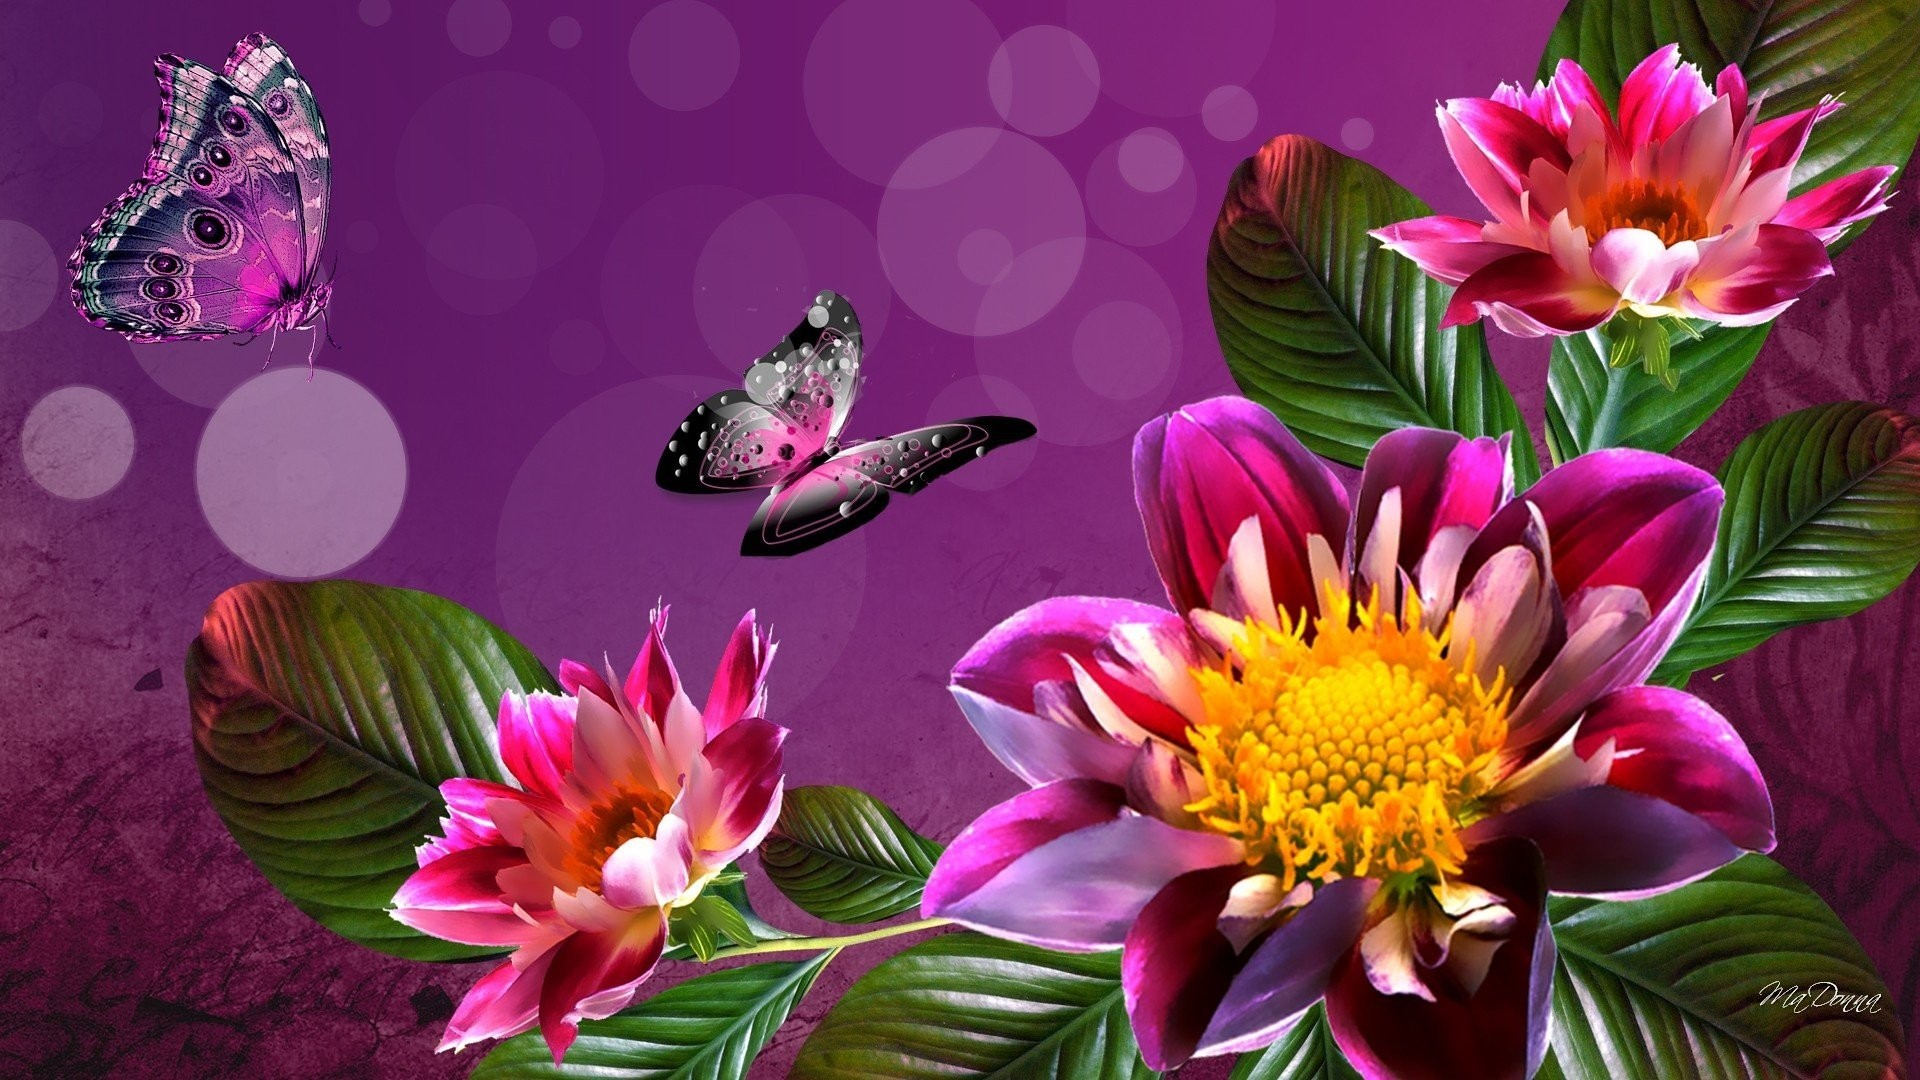 Hd Wallpaper For Pc Full Screen 75 Images